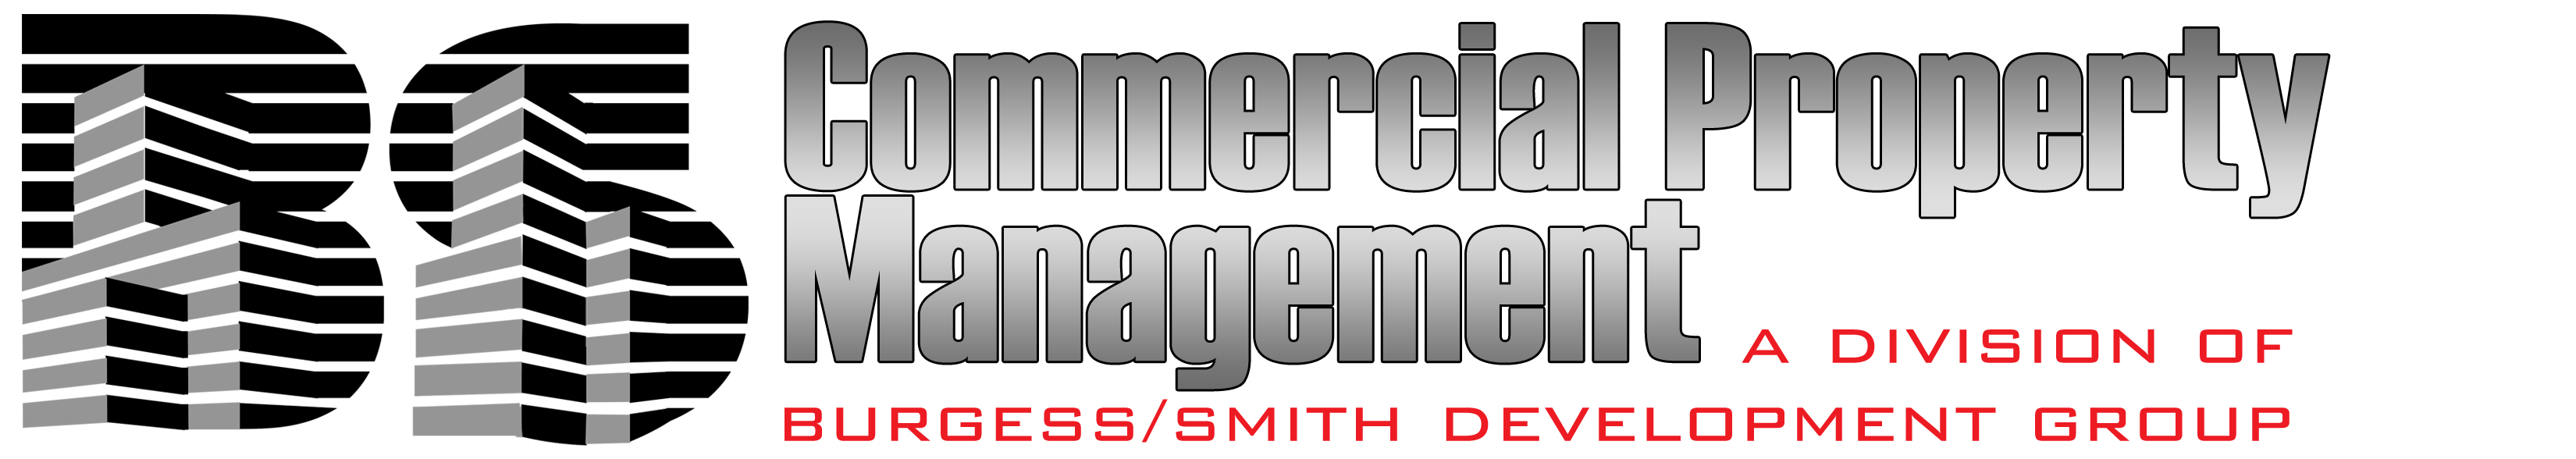 Burgess-Smith Commercial Property Management - a Division of Burgess/Smith Development Group